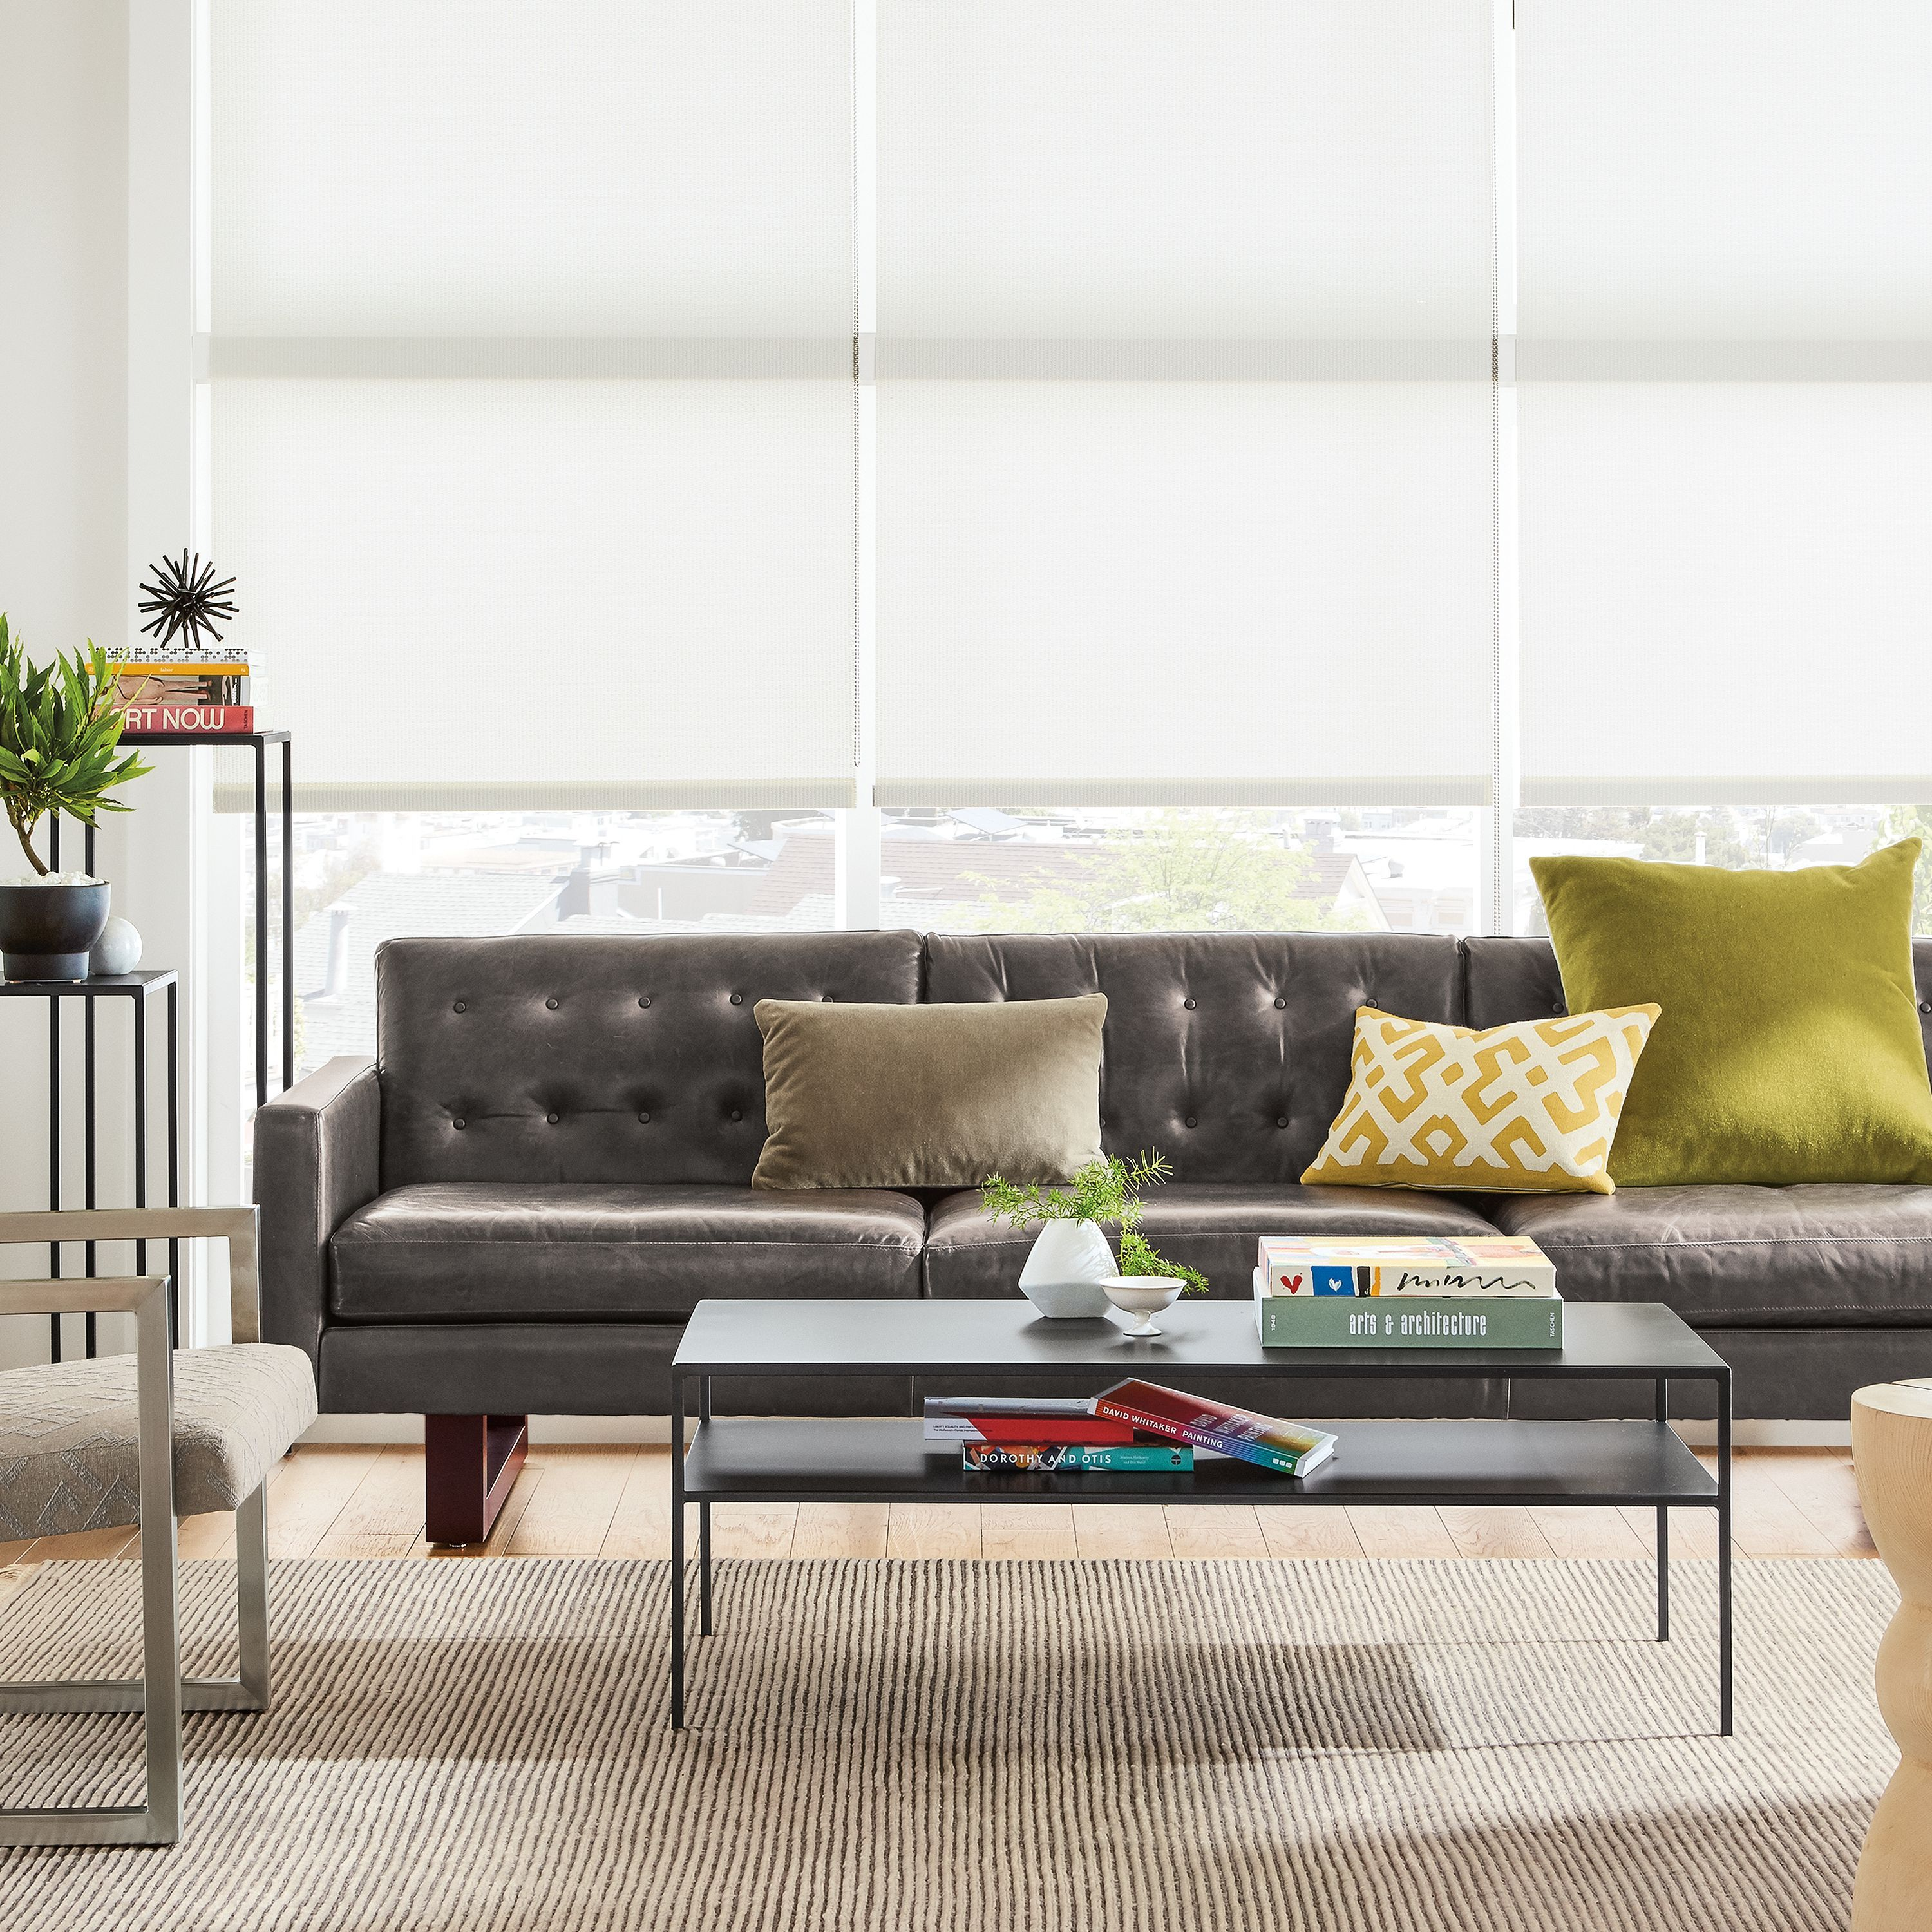 Room And Board Furniture Minneapolis: Sofa, Outdoor Chairs